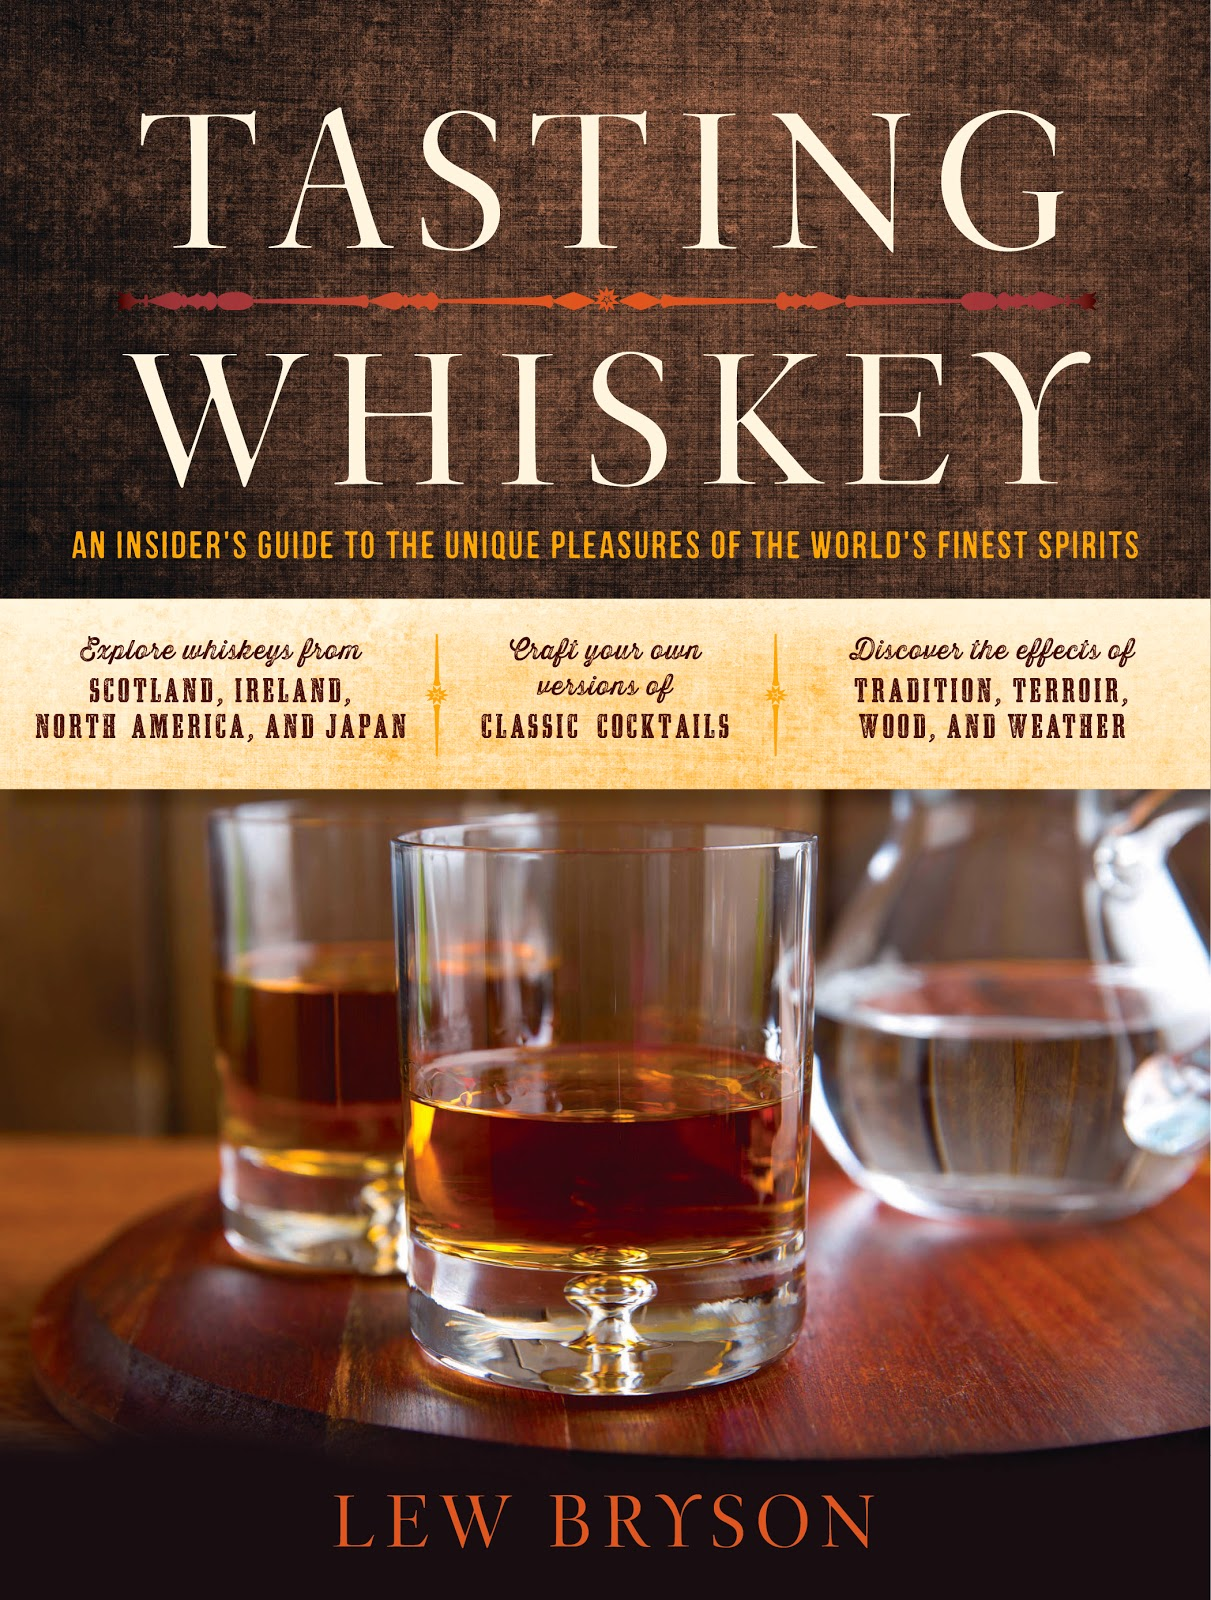 Whiskey Tasting Invitation are Luxury Design To Make Awesome Invitations Template